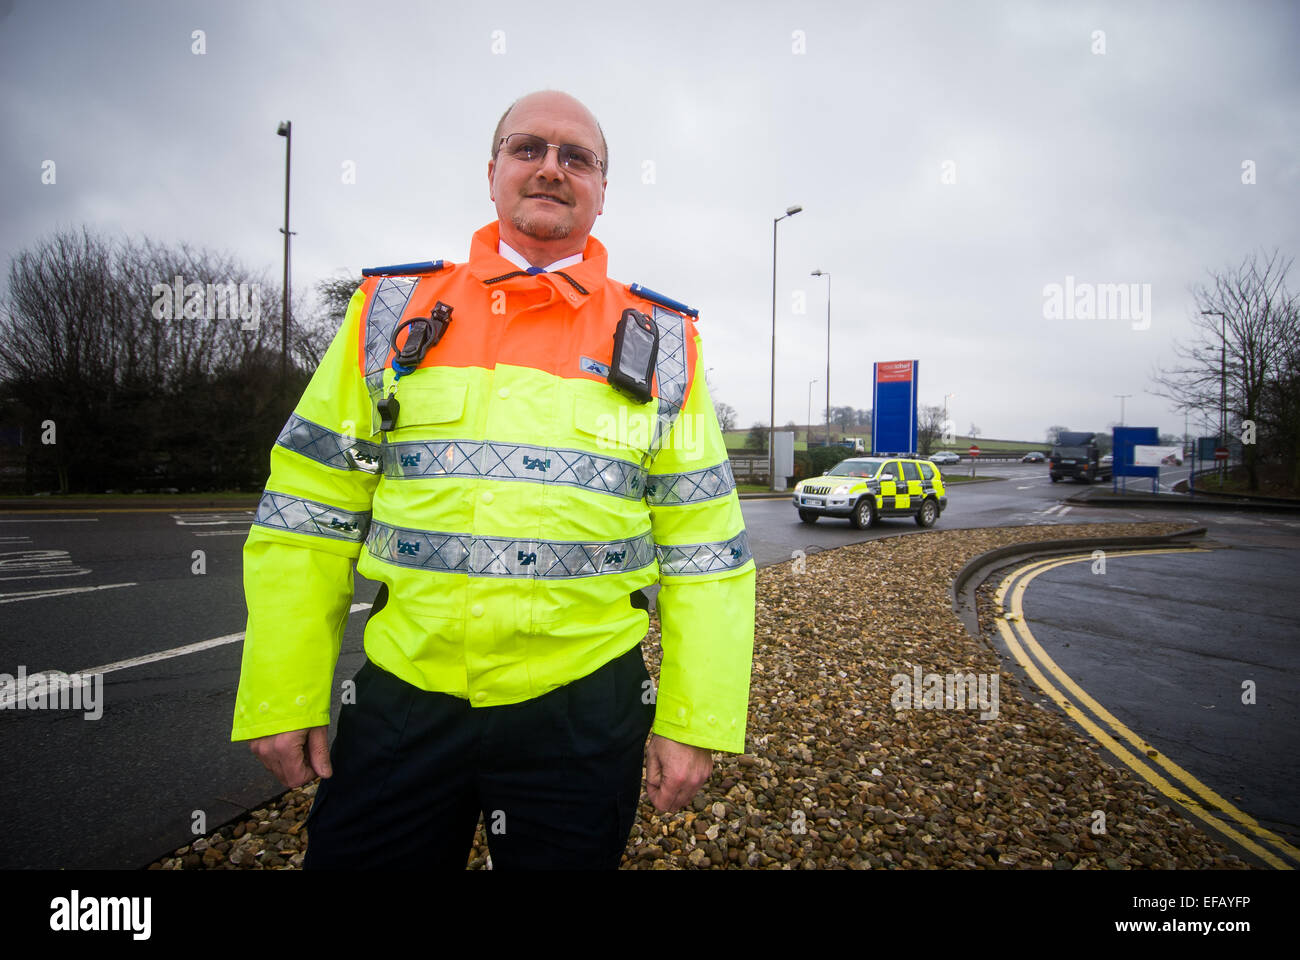 Traffic Officer at Watford Gap service station with traffic police car behind - Stock Image